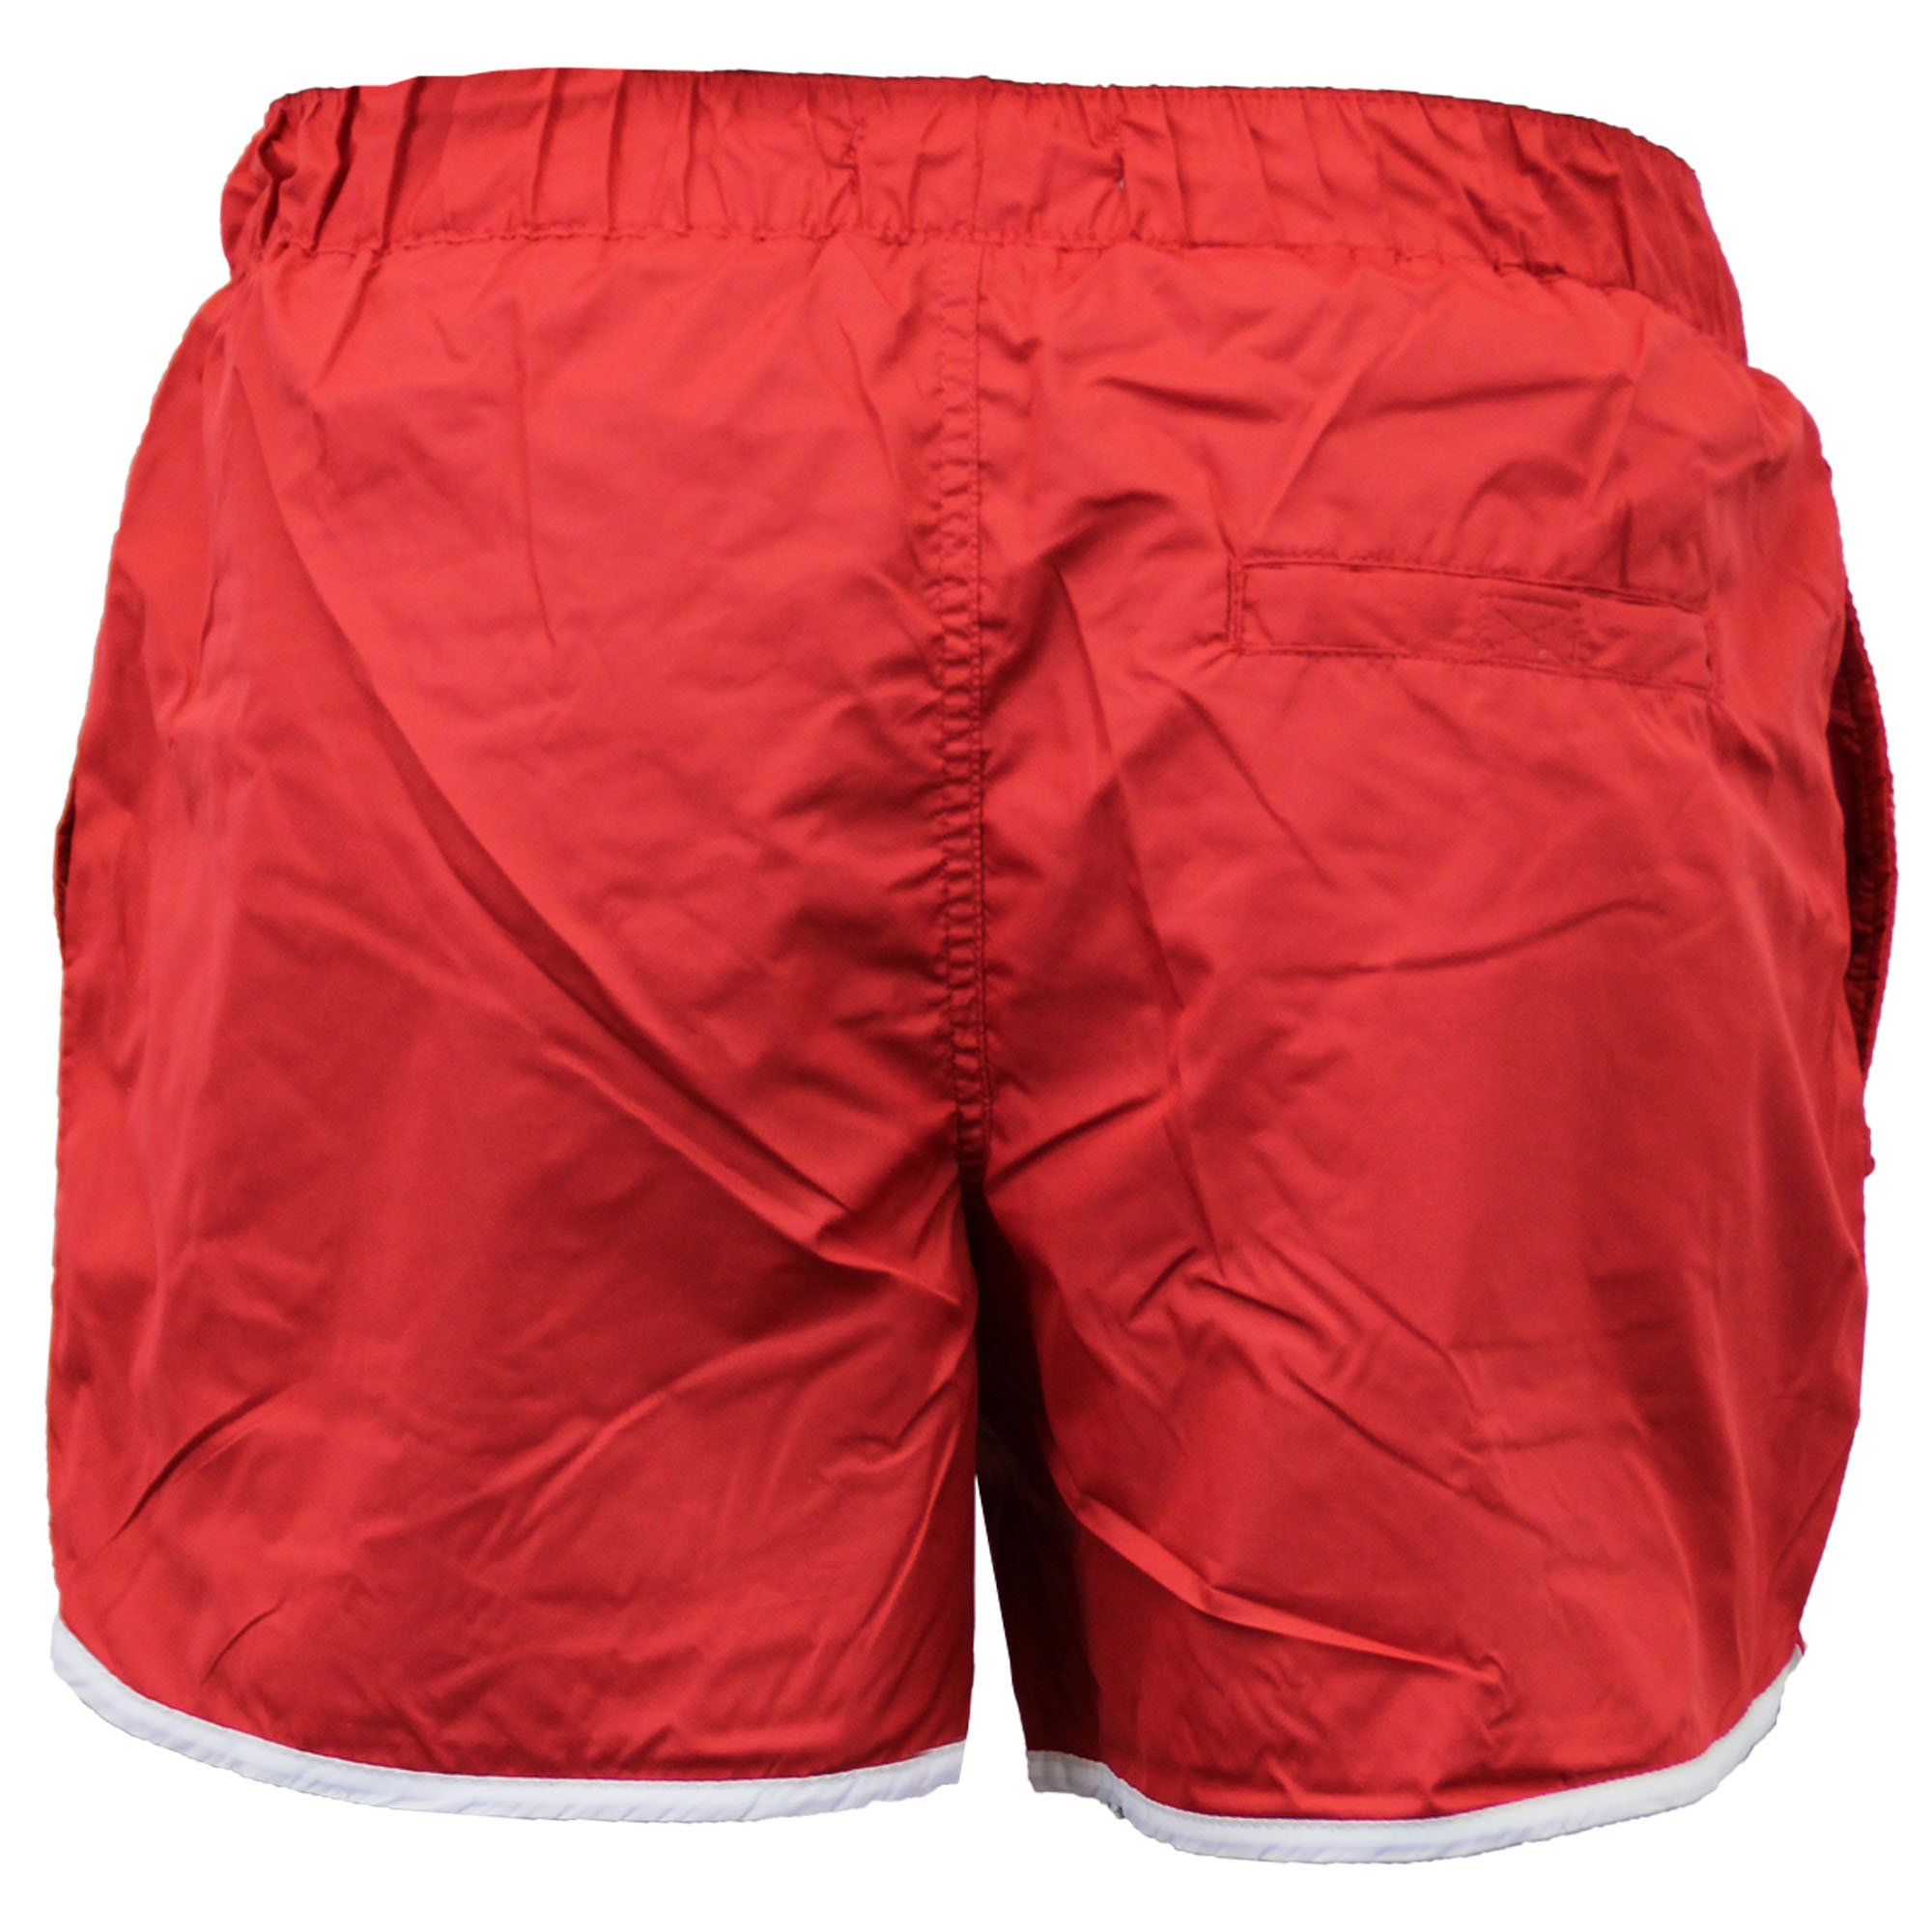 Mens-Swim-Board-Shorts-By-Brave-Soul-Mesh-Lined-New thumbnail 58